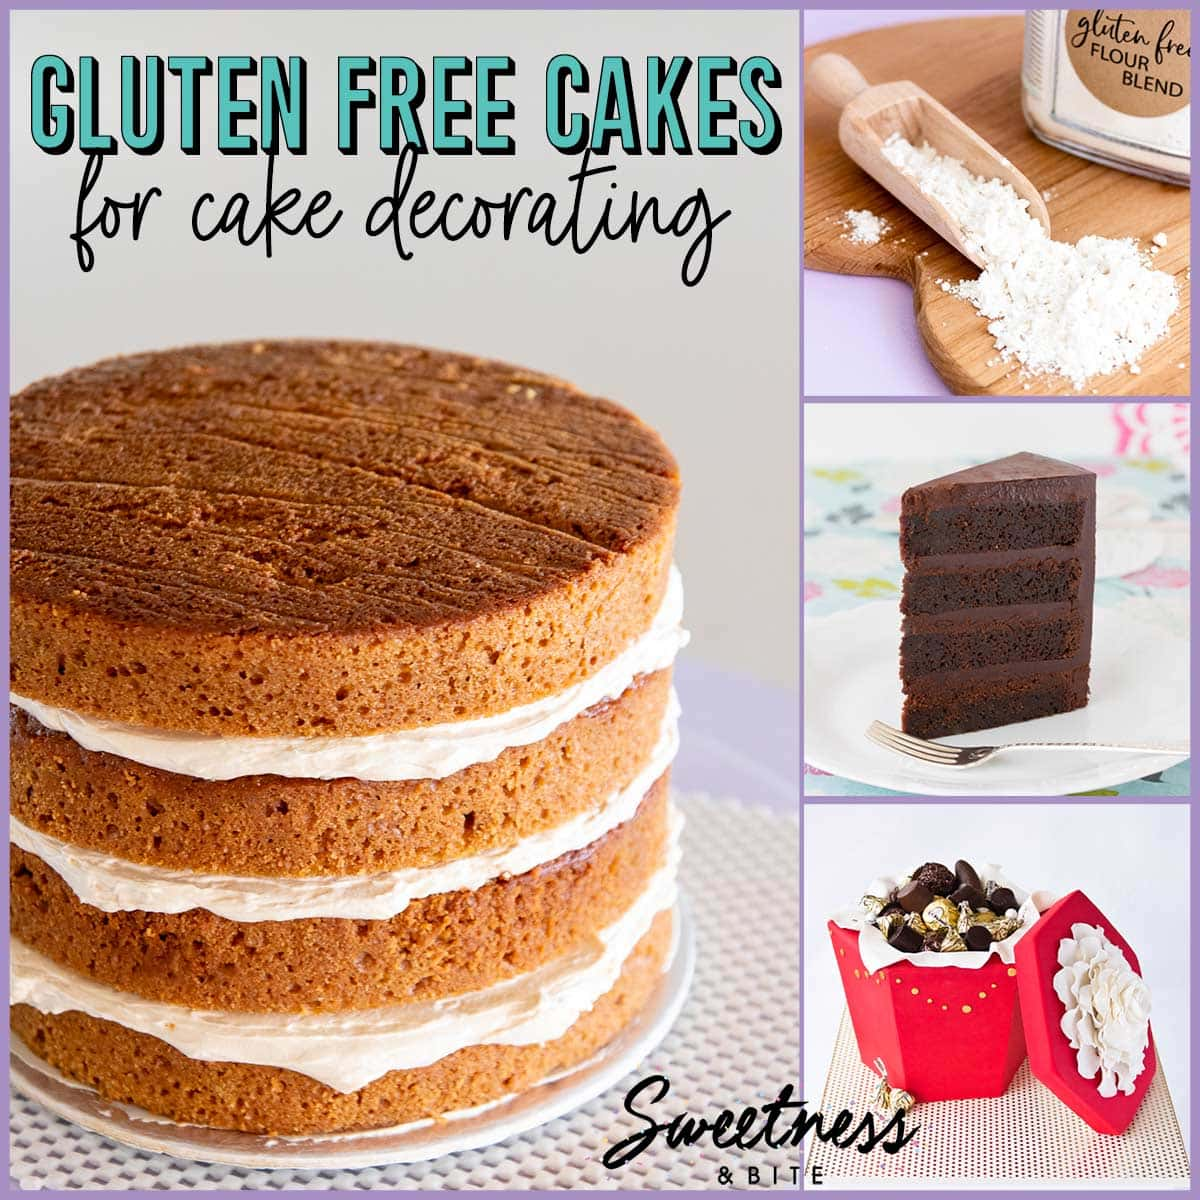 Gluten Free Cakes for Decorating. Suitable for covering in fondant and for tiered cakes. ~Sweetness & Bite